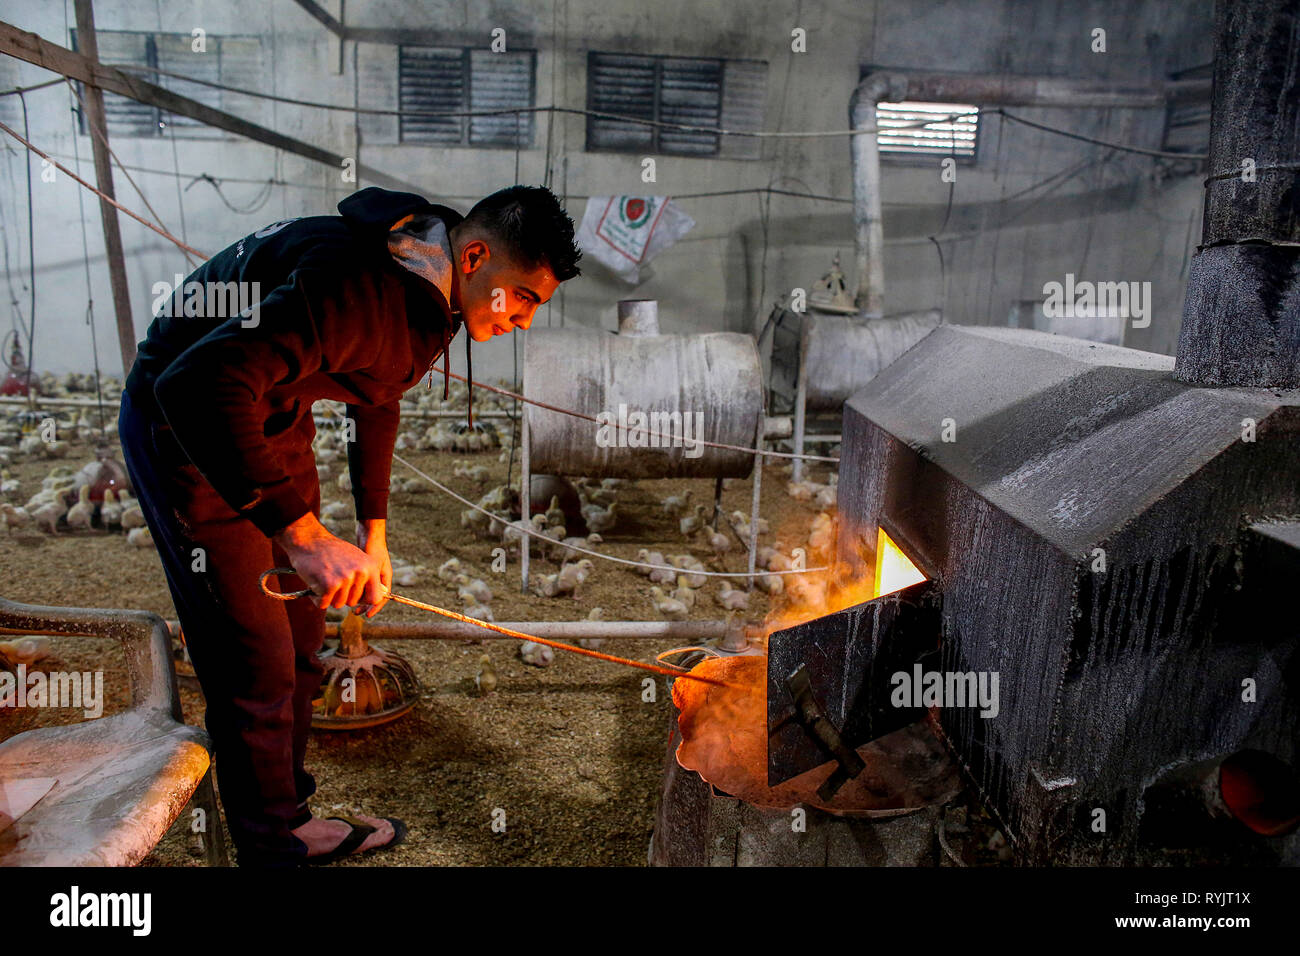 Qais Mahmoud Adel Mahmoud's heated poultry farm in Beit Imrine, West Bank, Palestine, financed by a loan from ACAD Finance. - Stock Image